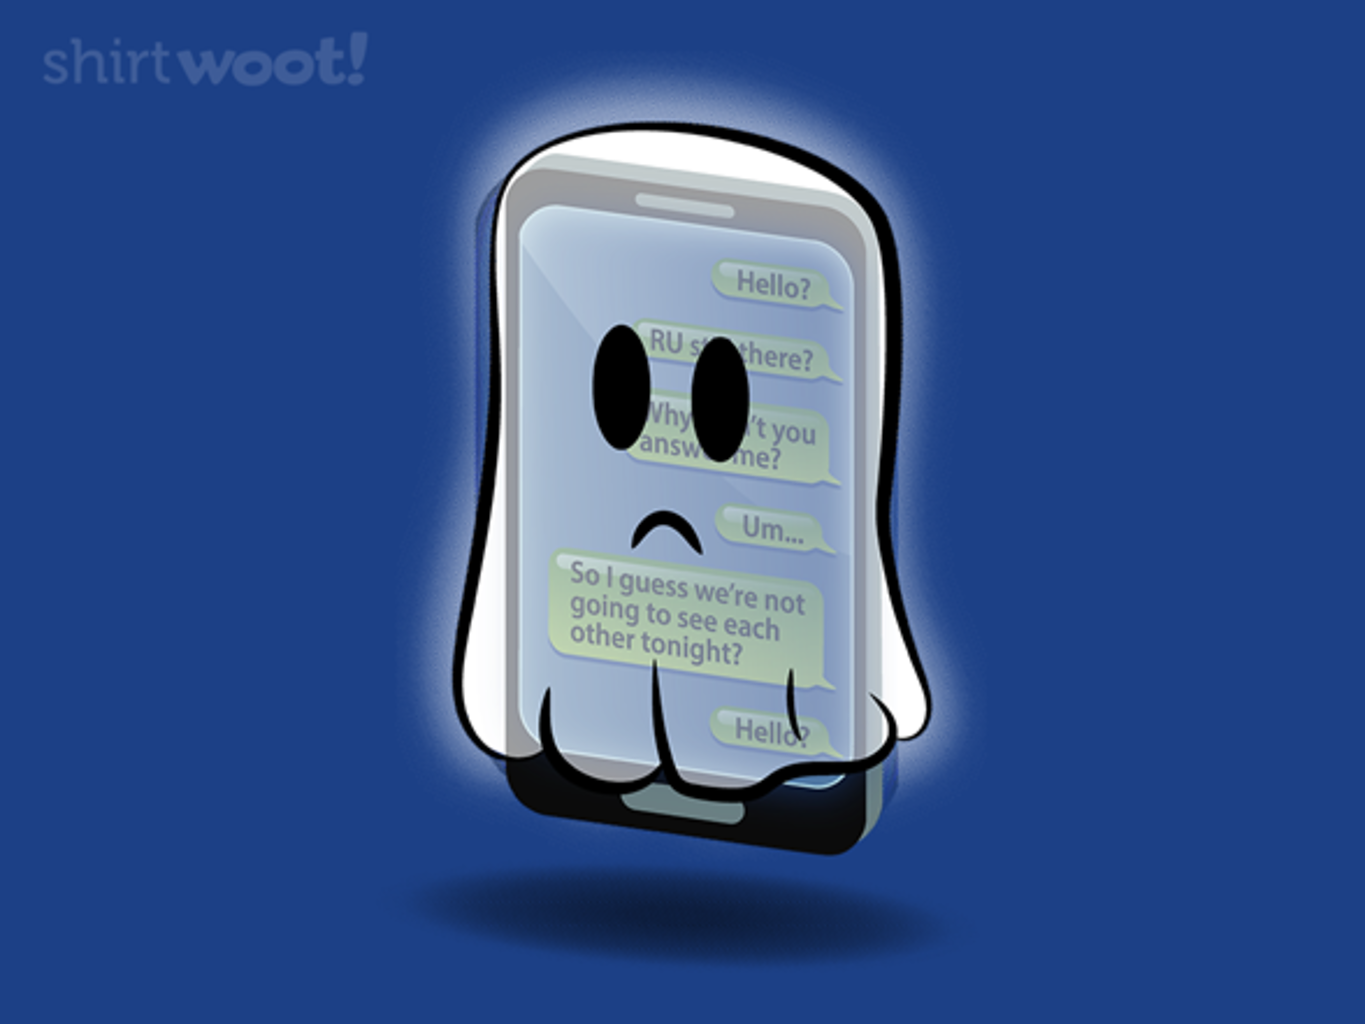 Woot!: GHOSTED!